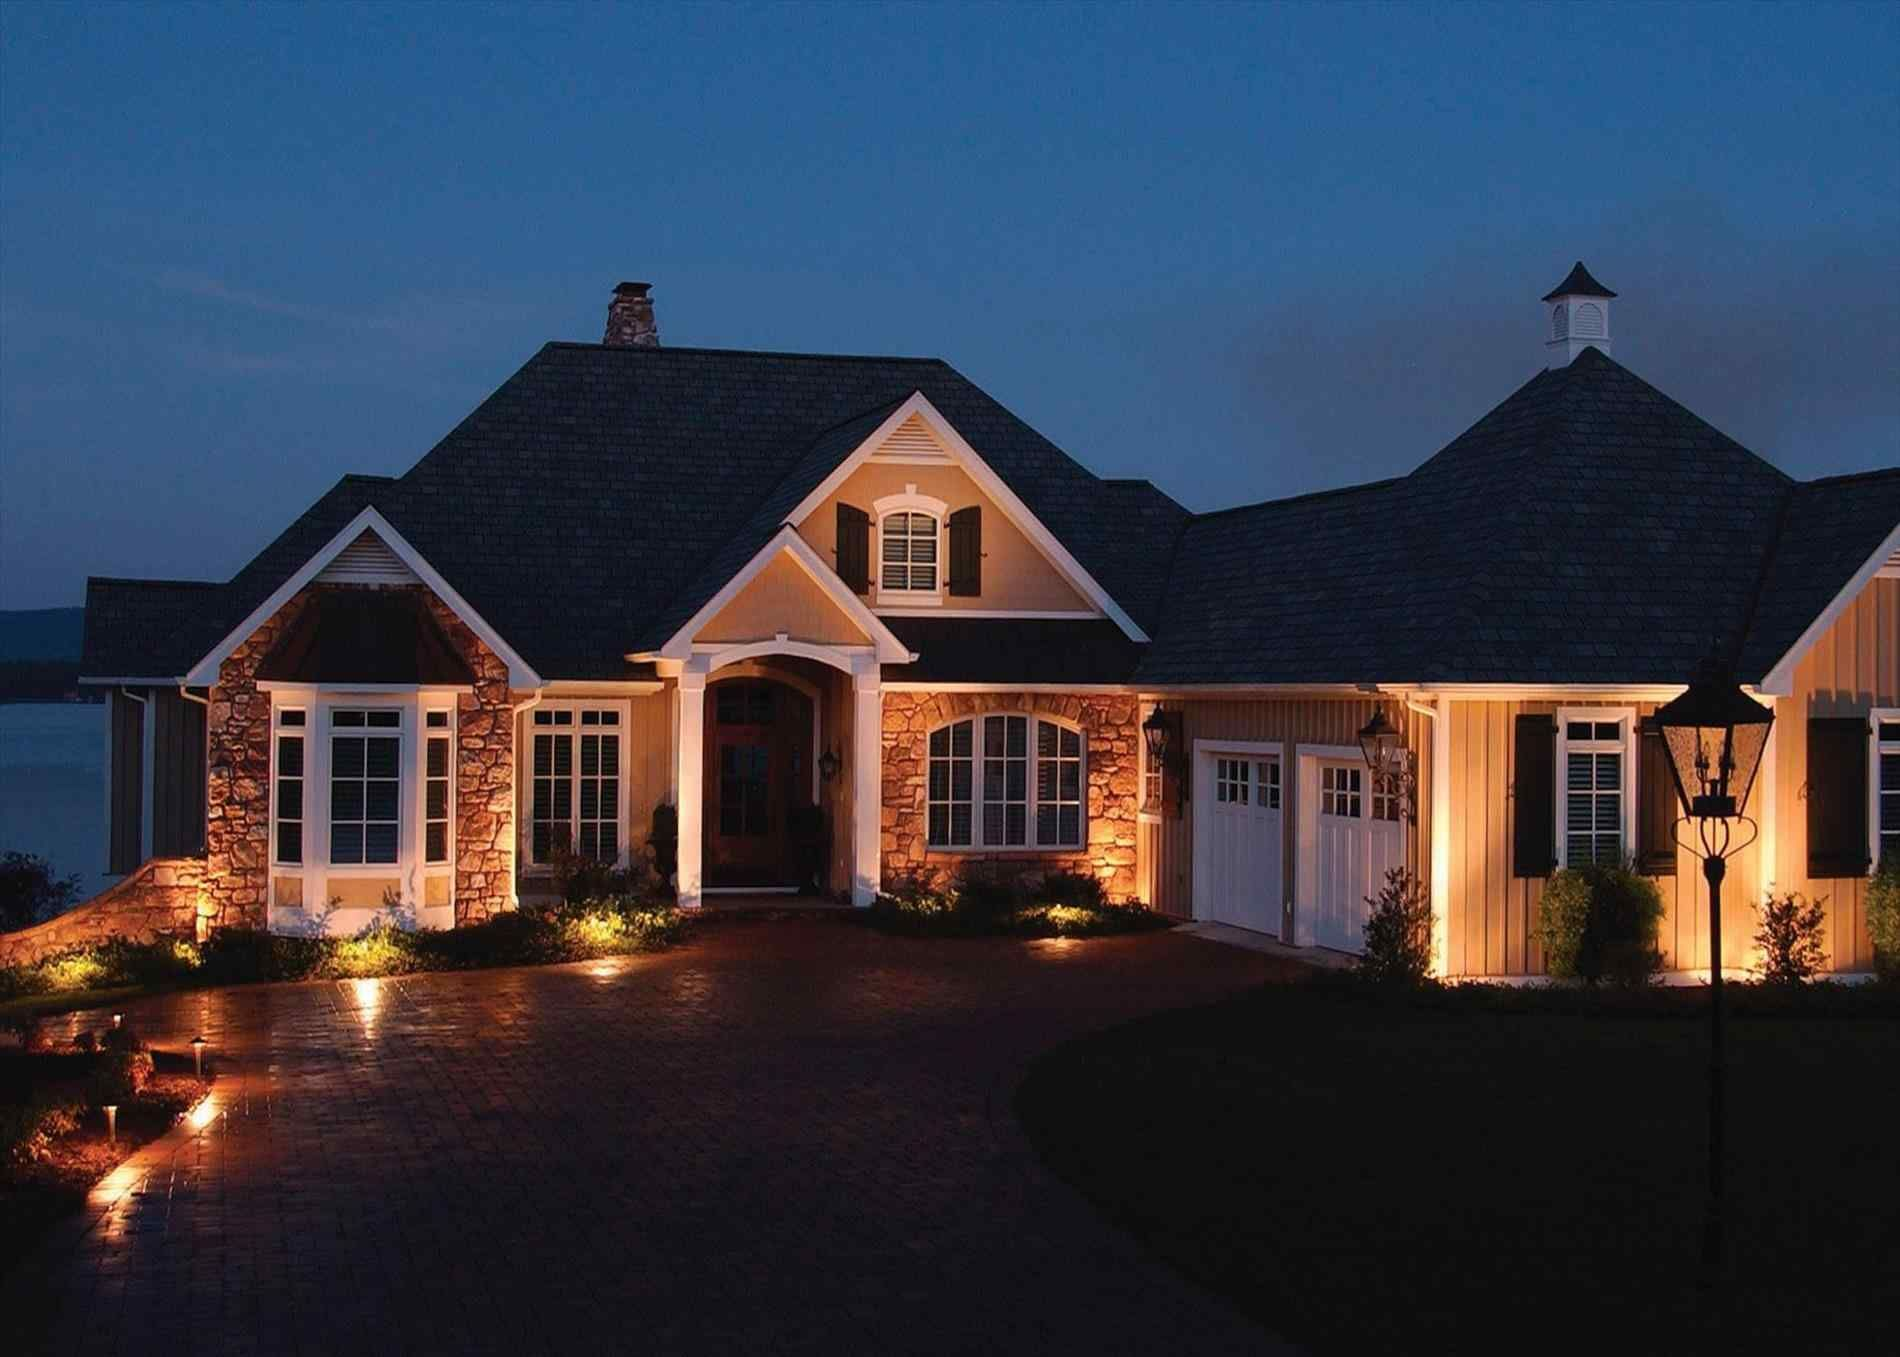 13 Gorgeous Uplighting For Home Interior Ideas Outdoor Recessed